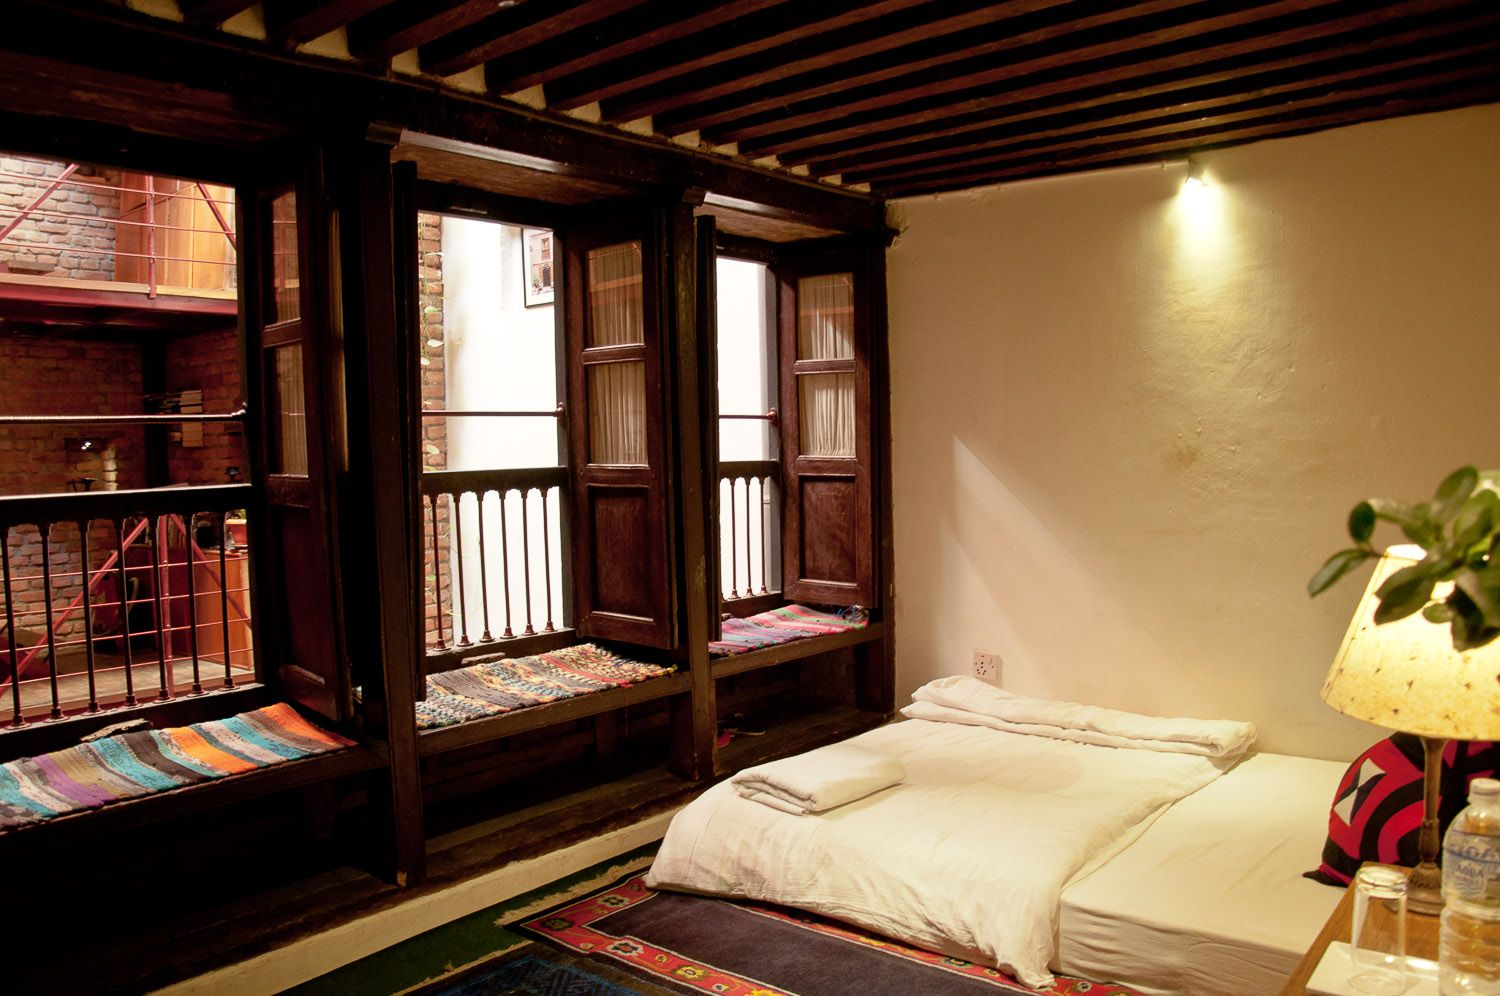 First Floor Single Room Small House Design Traditional House Plans Small Single Bed